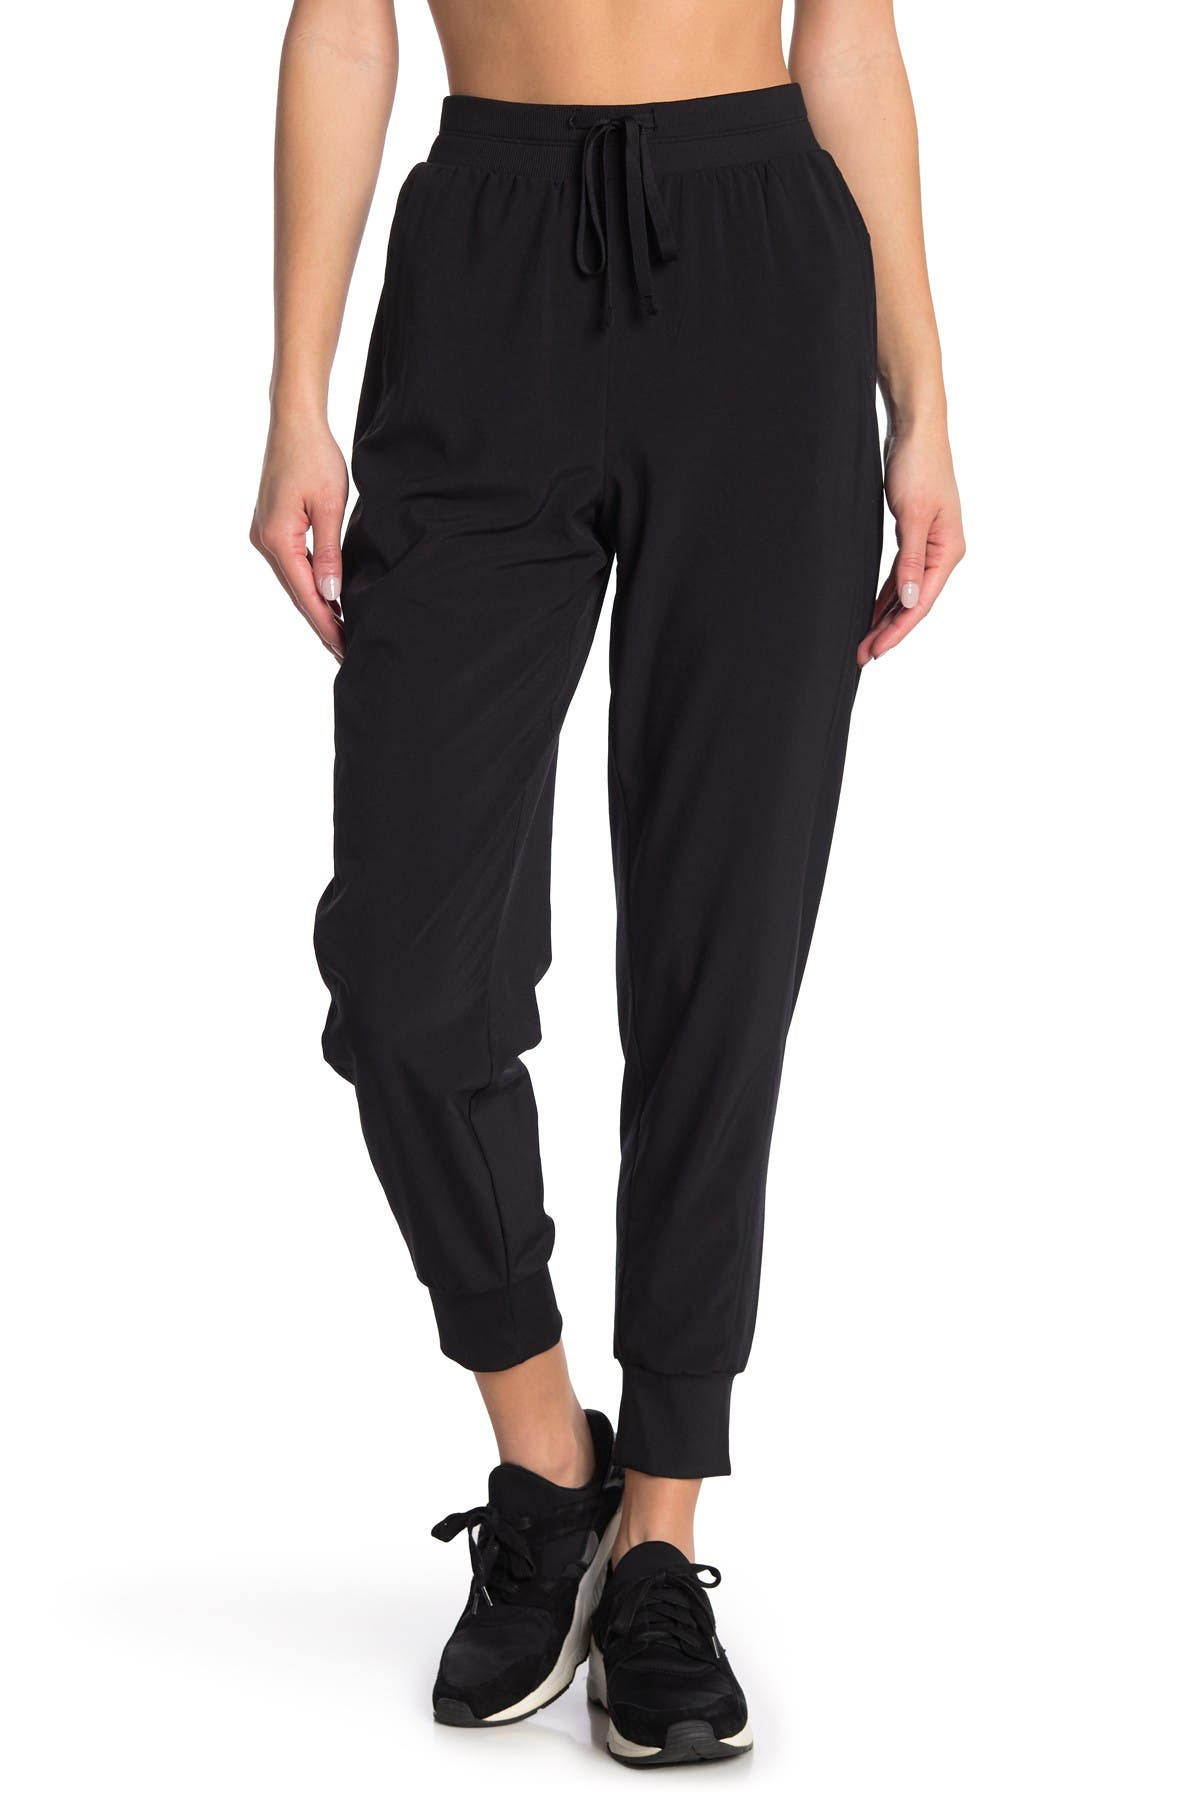 Image of Z By Zella Take a Hike Drawstring Joggers